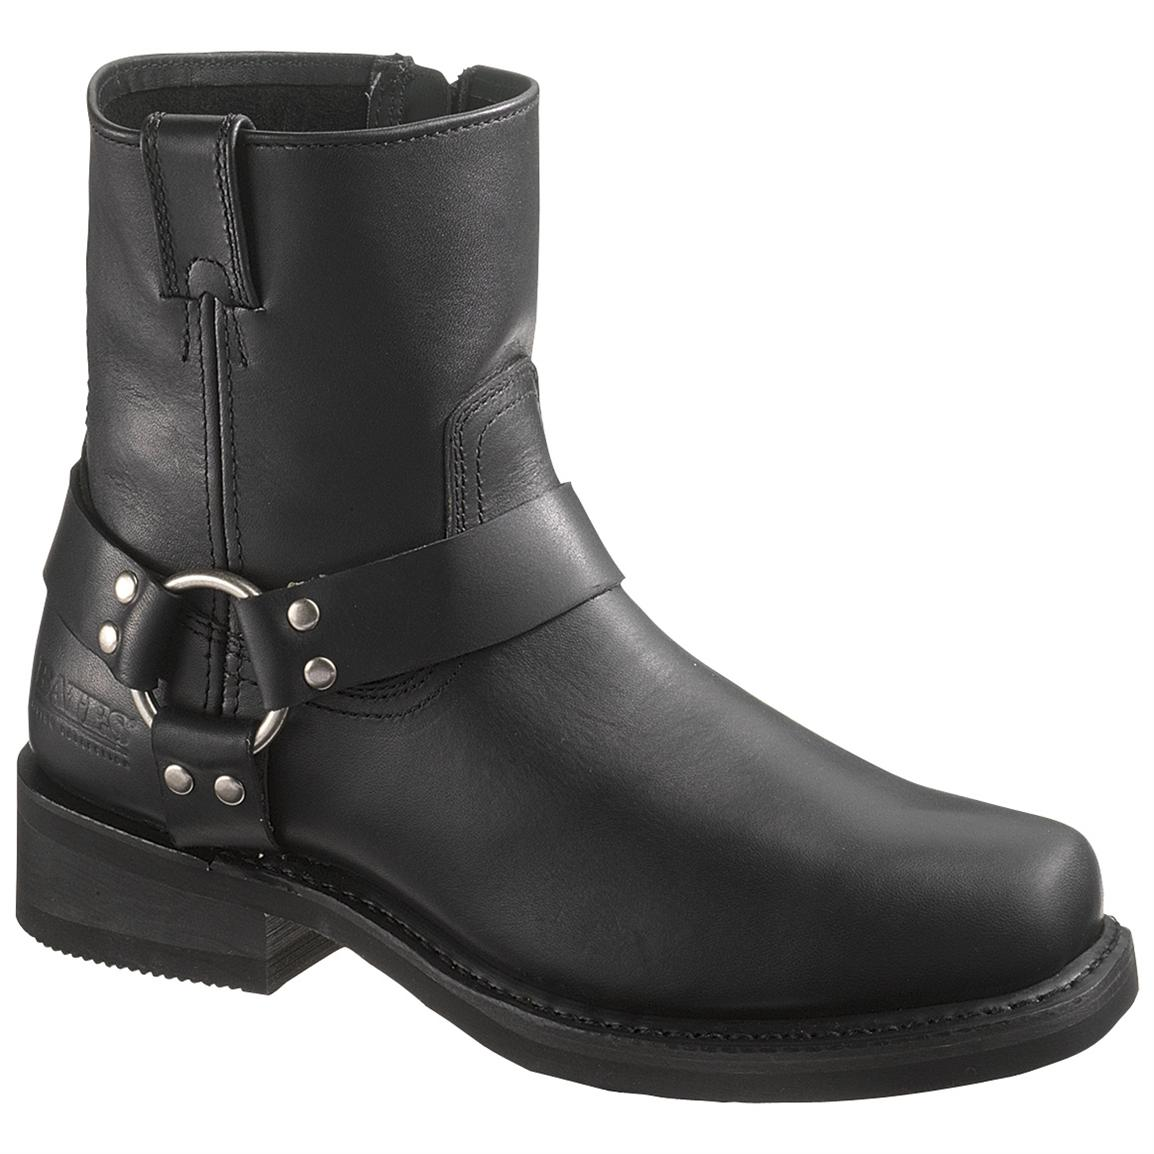 Mens Harness Boots 4G7zC2eY